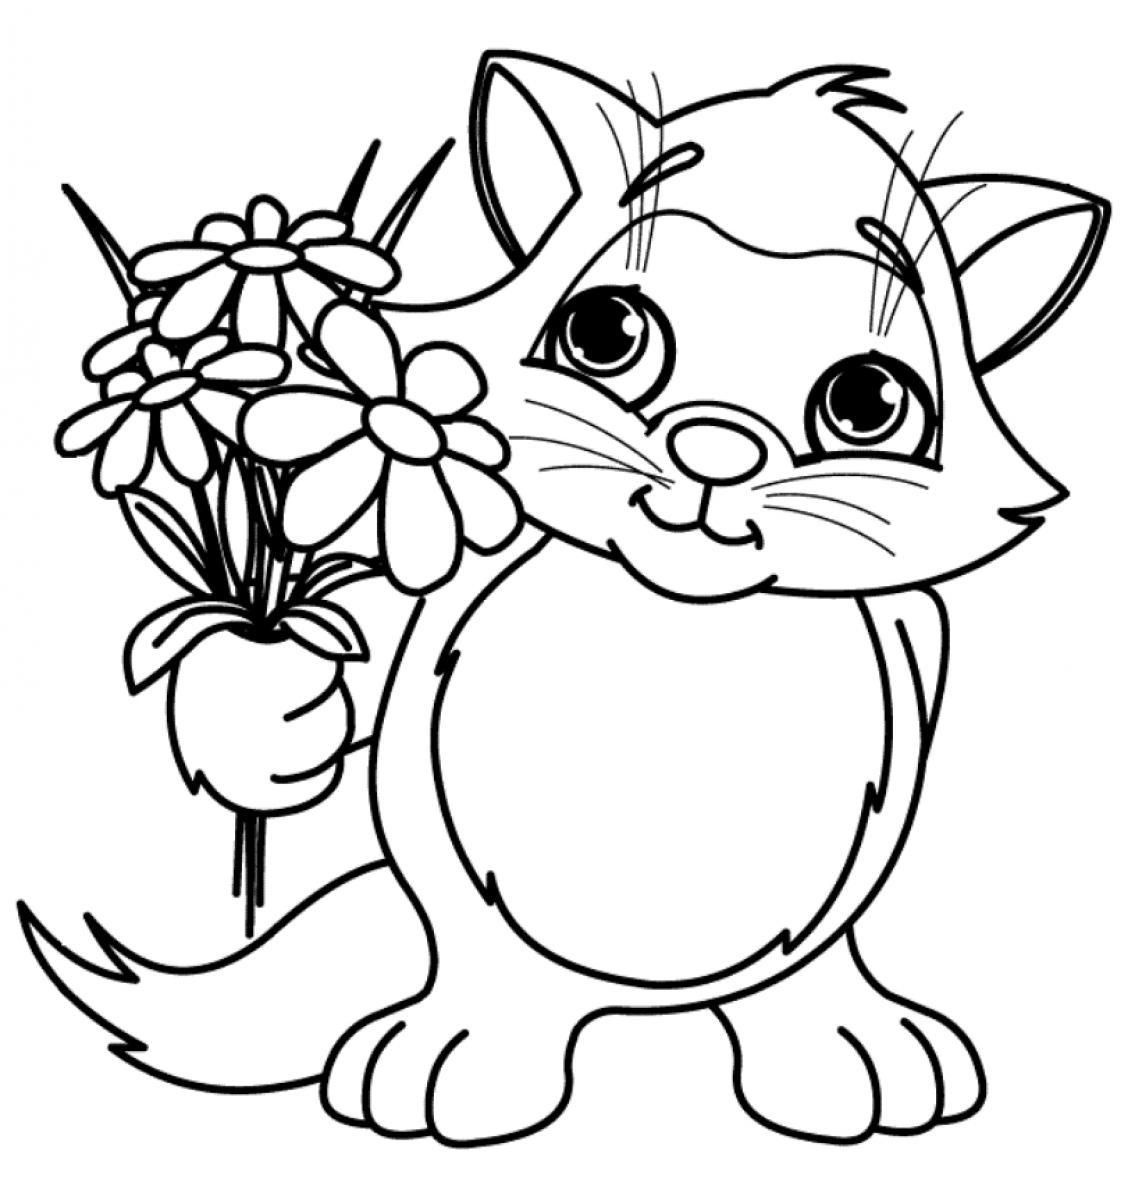 flower coloring sheet spring flower coloring pages to download and print for free sheet coloring flower